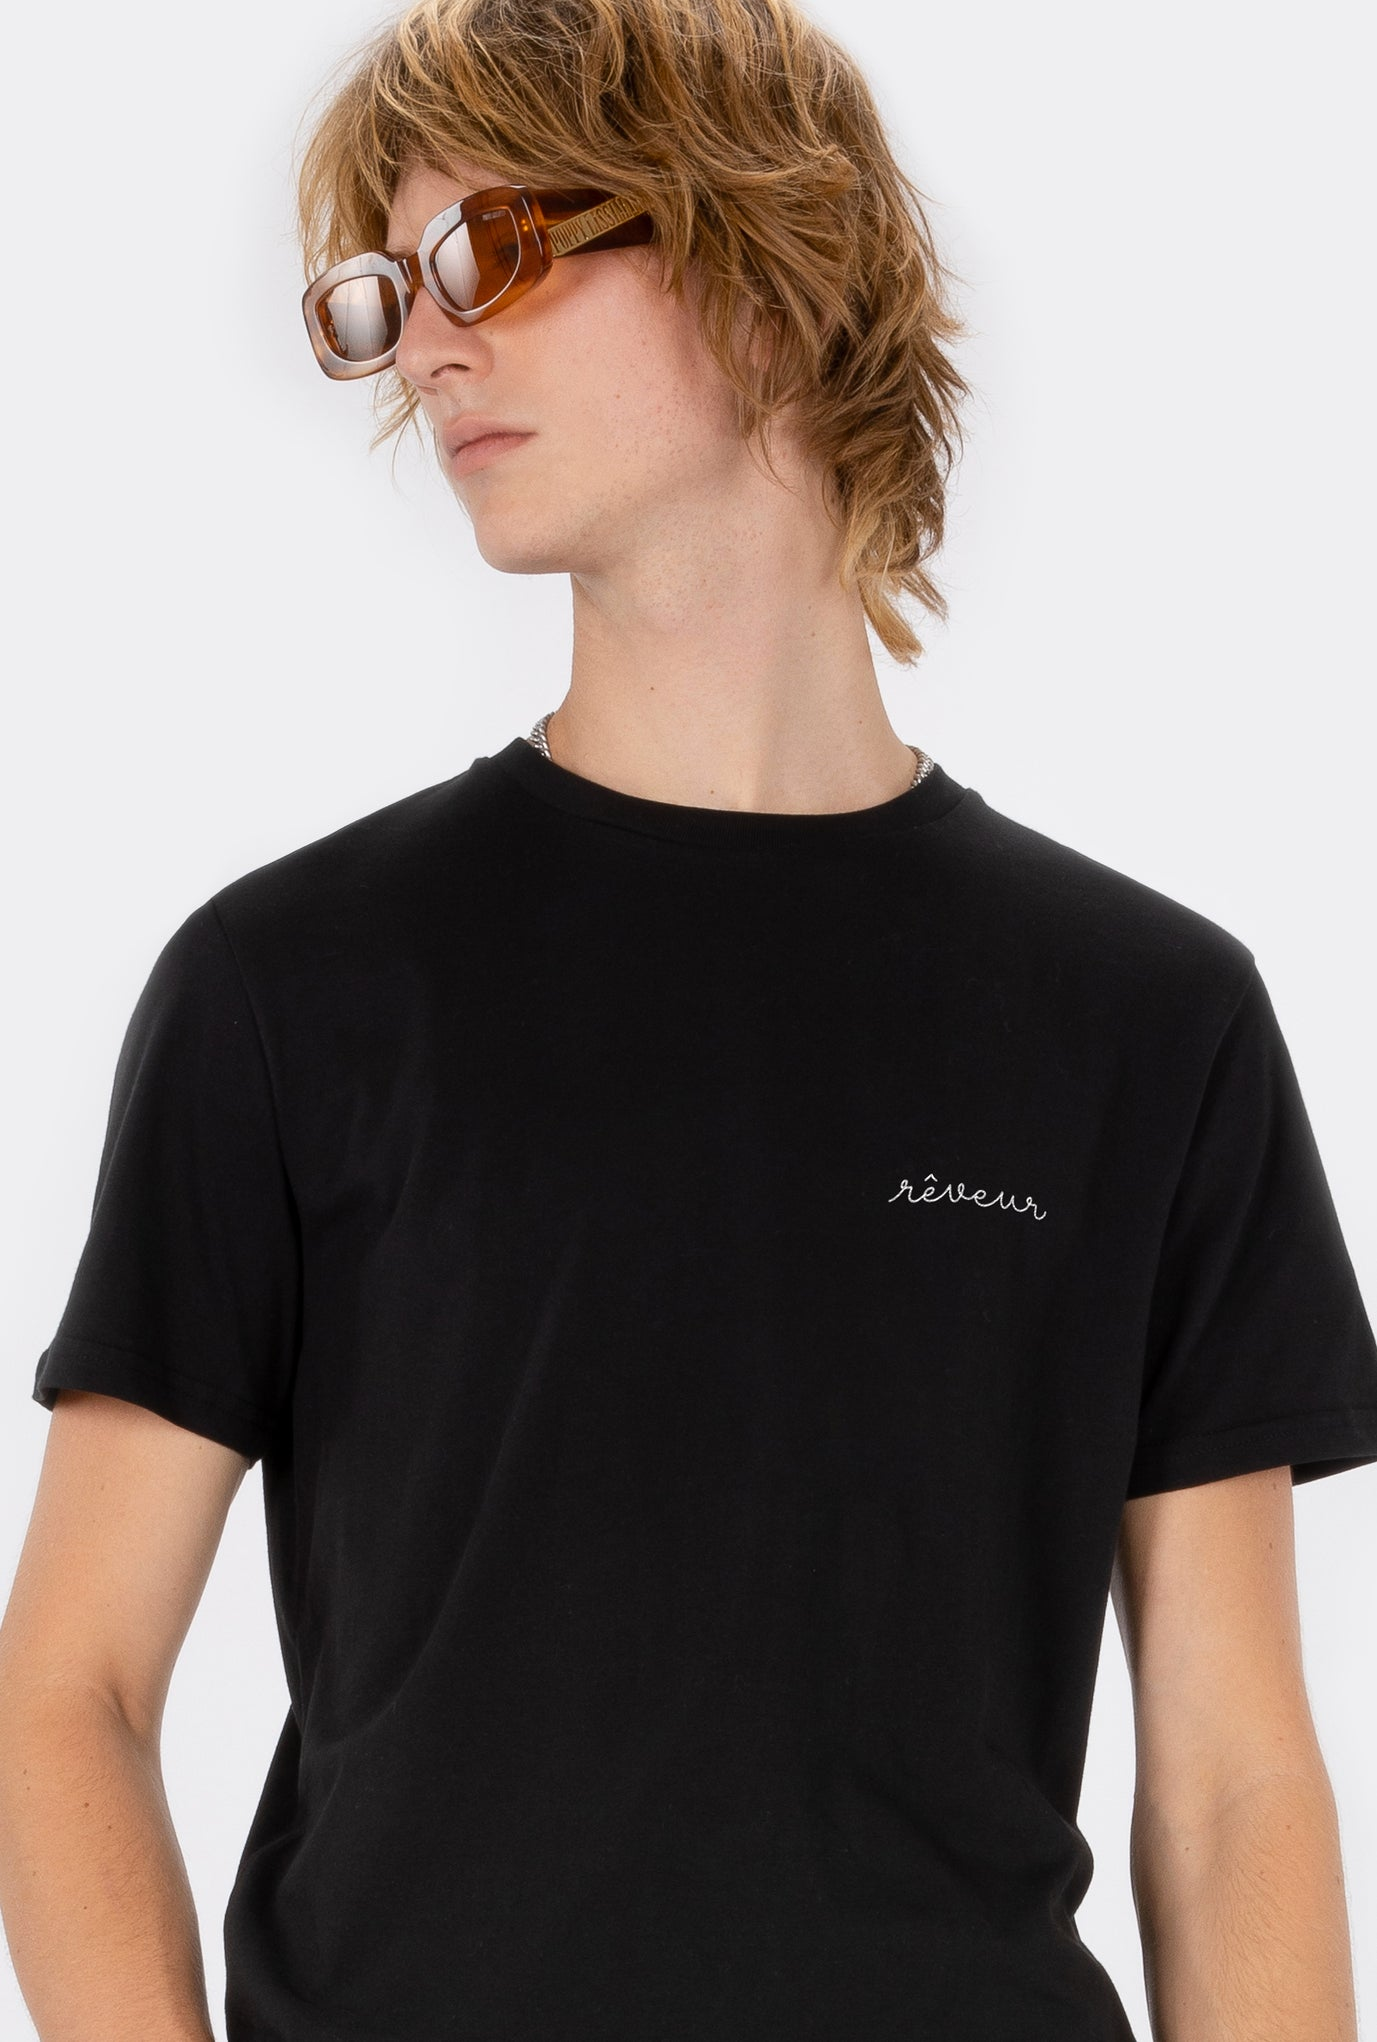 T-Shirt S/S Rêveur - Embroidered